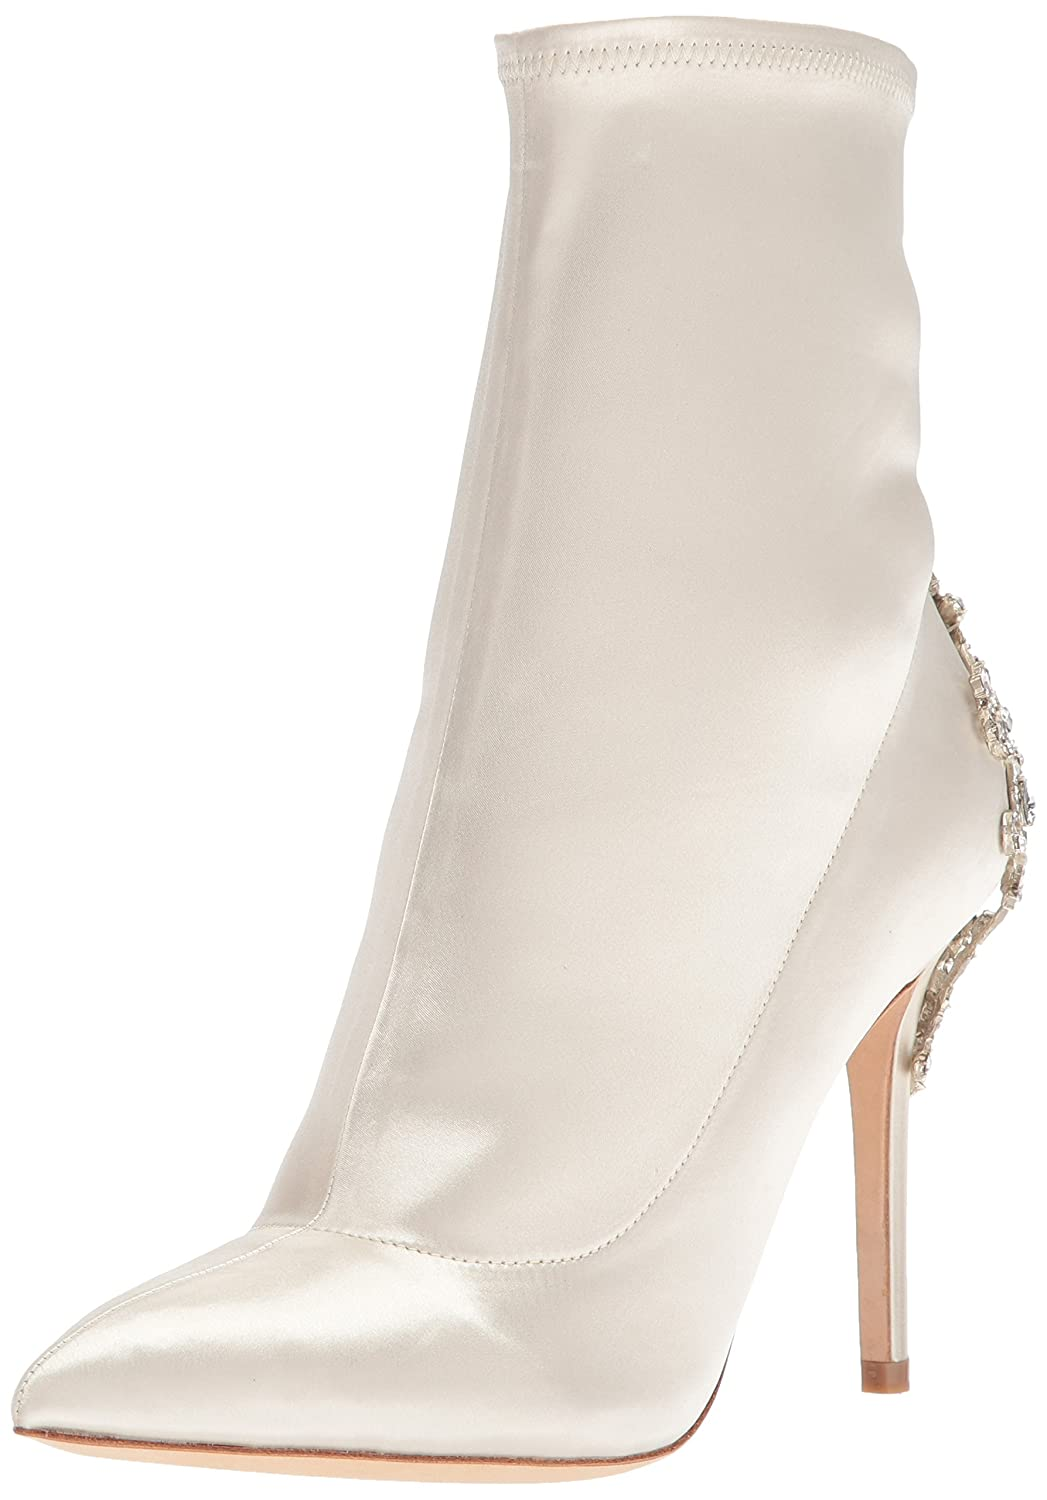 Badgley Mischka Women's Meg Ankle Boot B07483KN8Z 7 B(M) US|Ivory